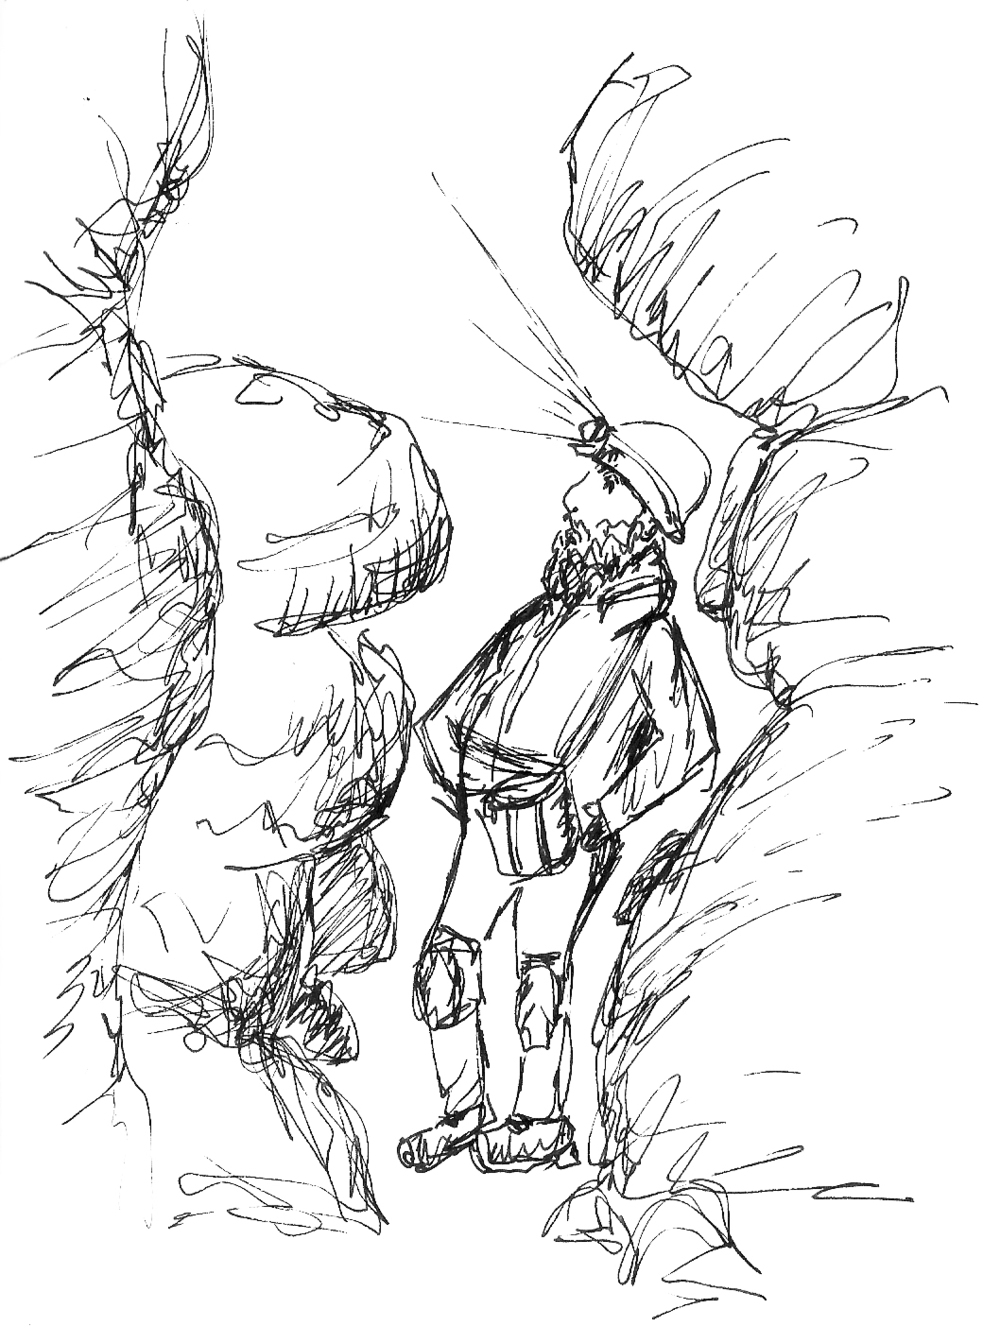 Pen sketch of a tour guide in Mammoth Cave National Park (sketch by E. K. Goodman)